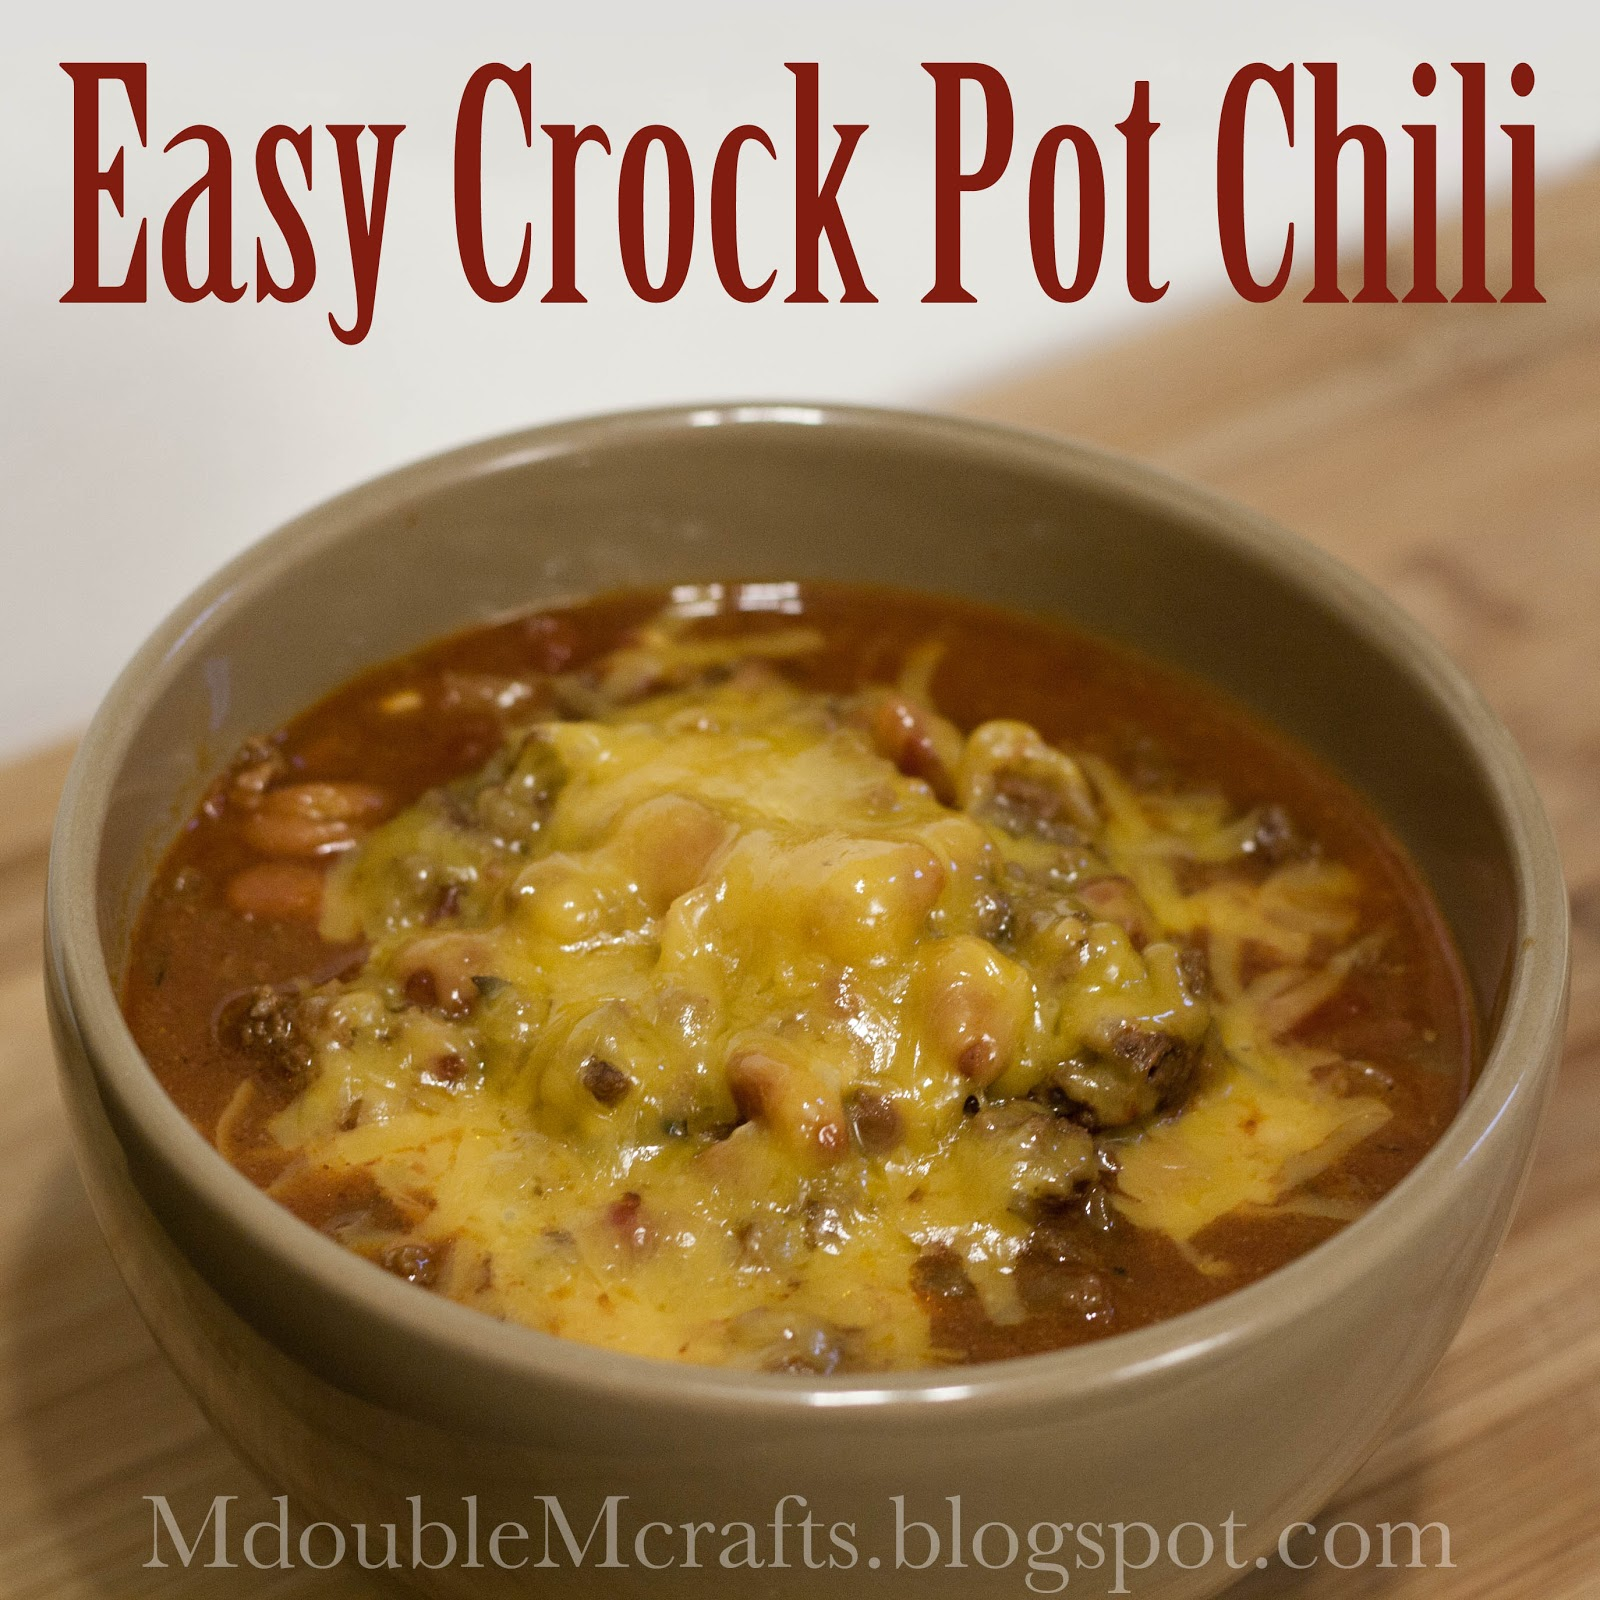 Aug 21,  · How to make this Easy Crock Pot Chili Recipe. Ingredients. 2 lbs browned and drained ground beef; 2 packages Chili-O chili seasoning; oz can peeled whole tomatoes or diced tomatoes; oz cans dark kidney beans; oz can of water; Directions. Place all the ingredients into a 6-quart crock pot and stir well.5/5(1).